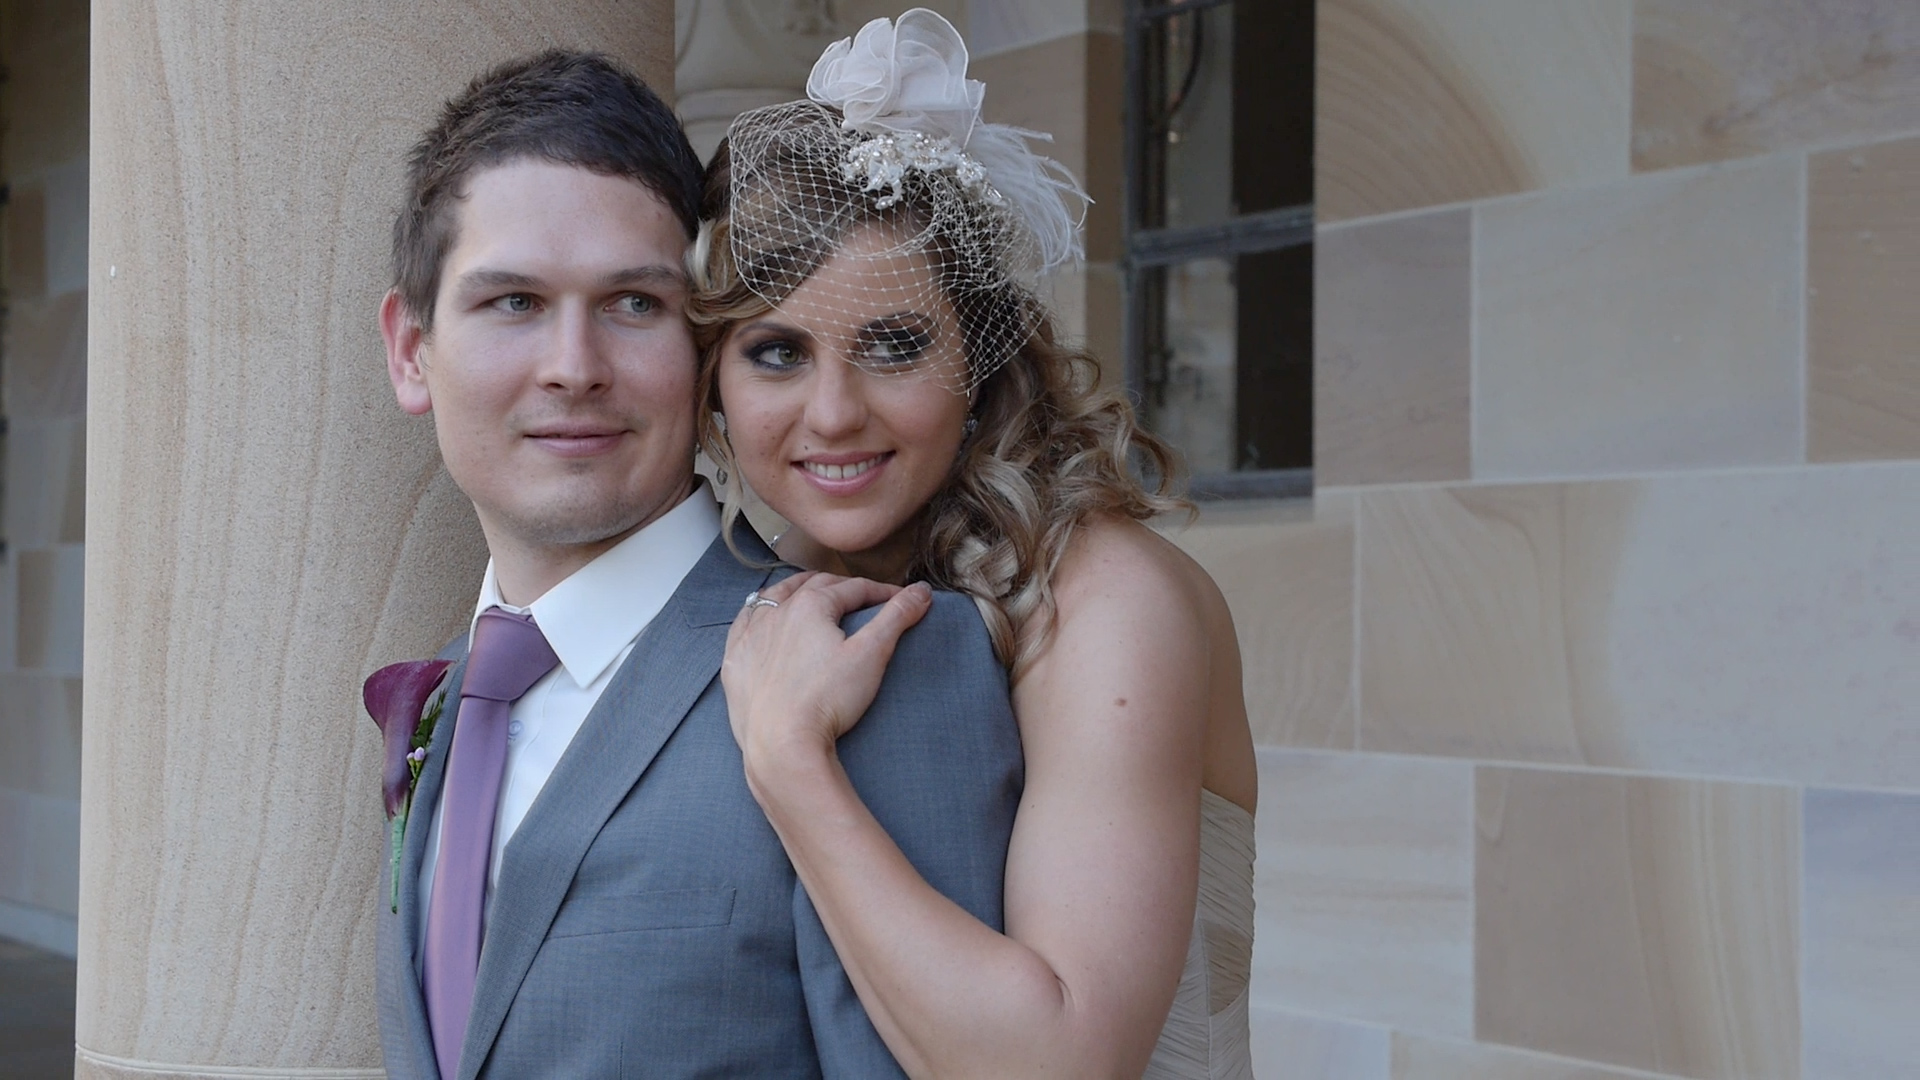 Wedding photos with Phil & Fiona at the University of Qld, St Lucia.